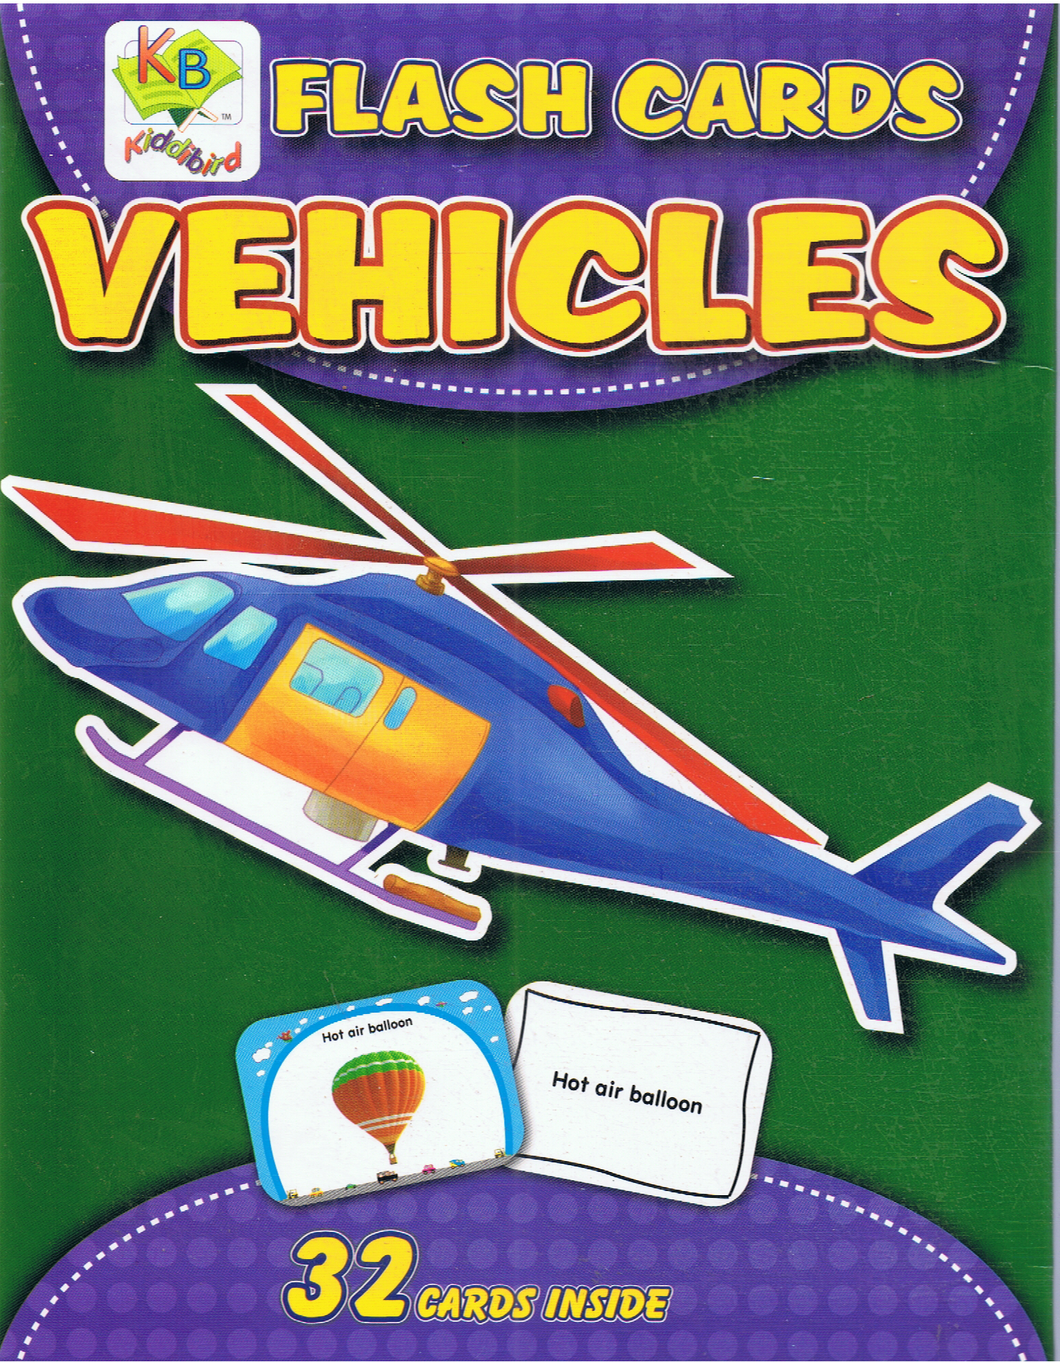 Flash Cards Vehicles